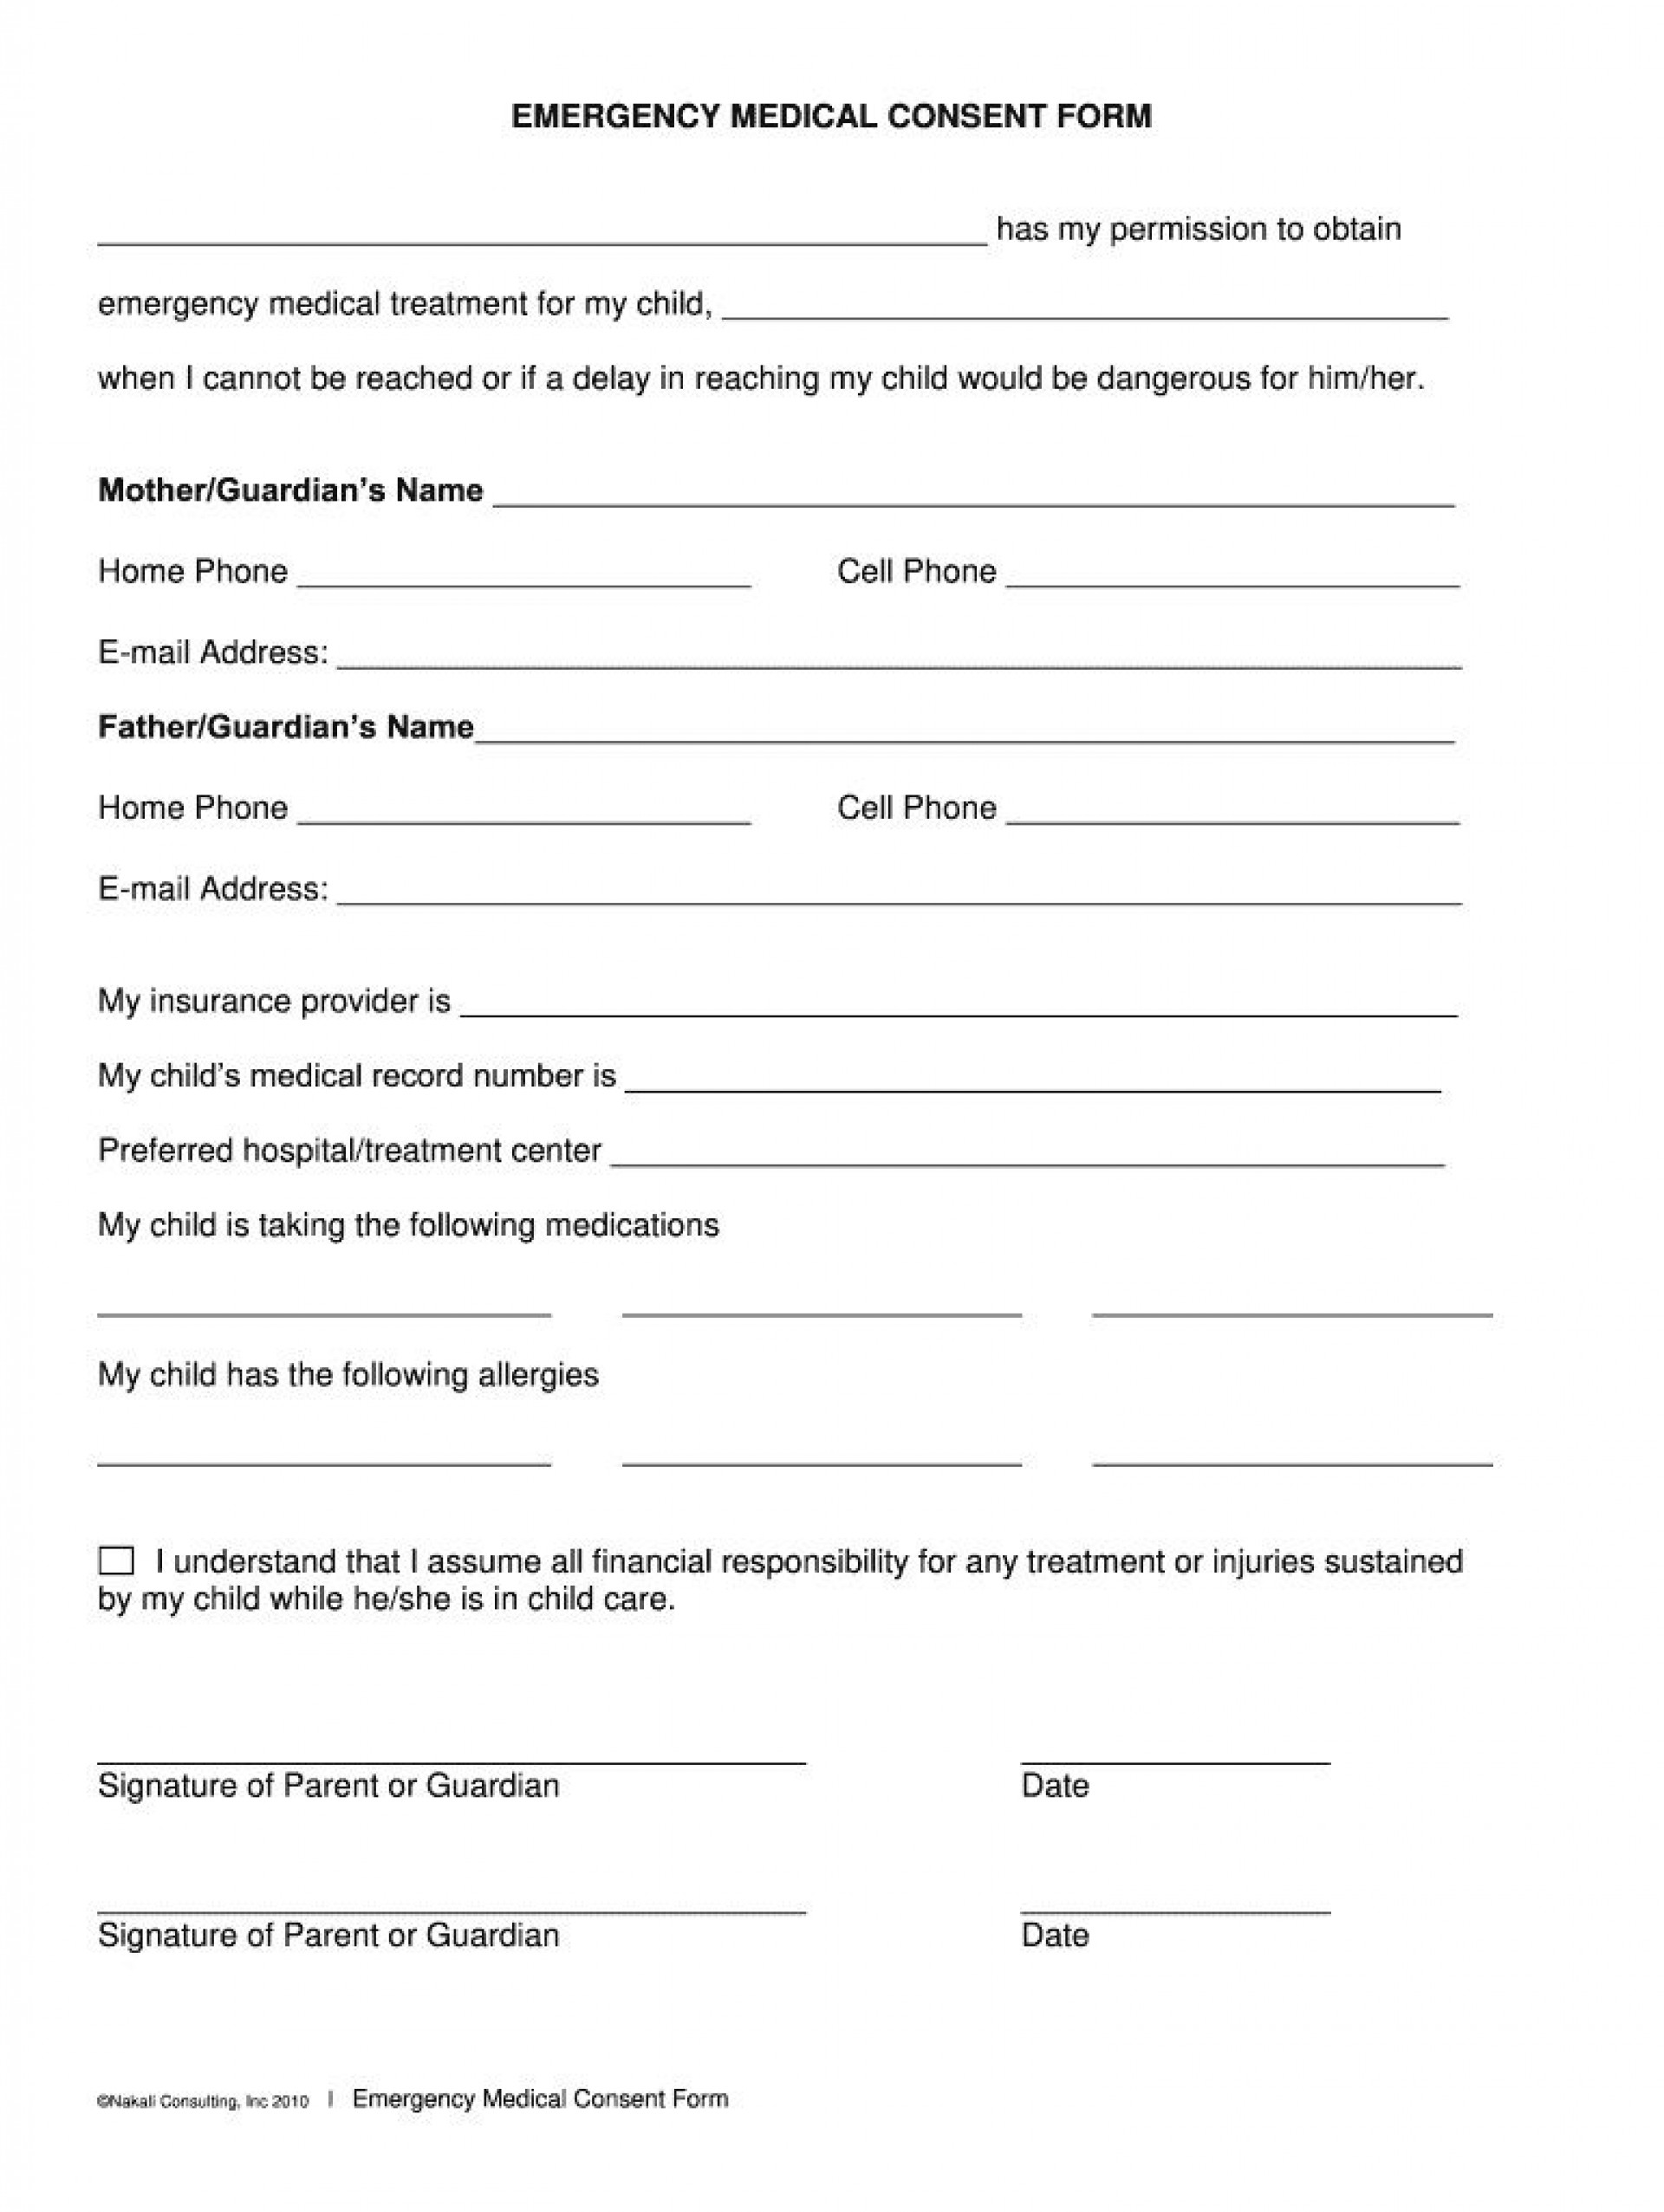 008 Stunning Medical Consent Form Template Photo  Templates Free1920